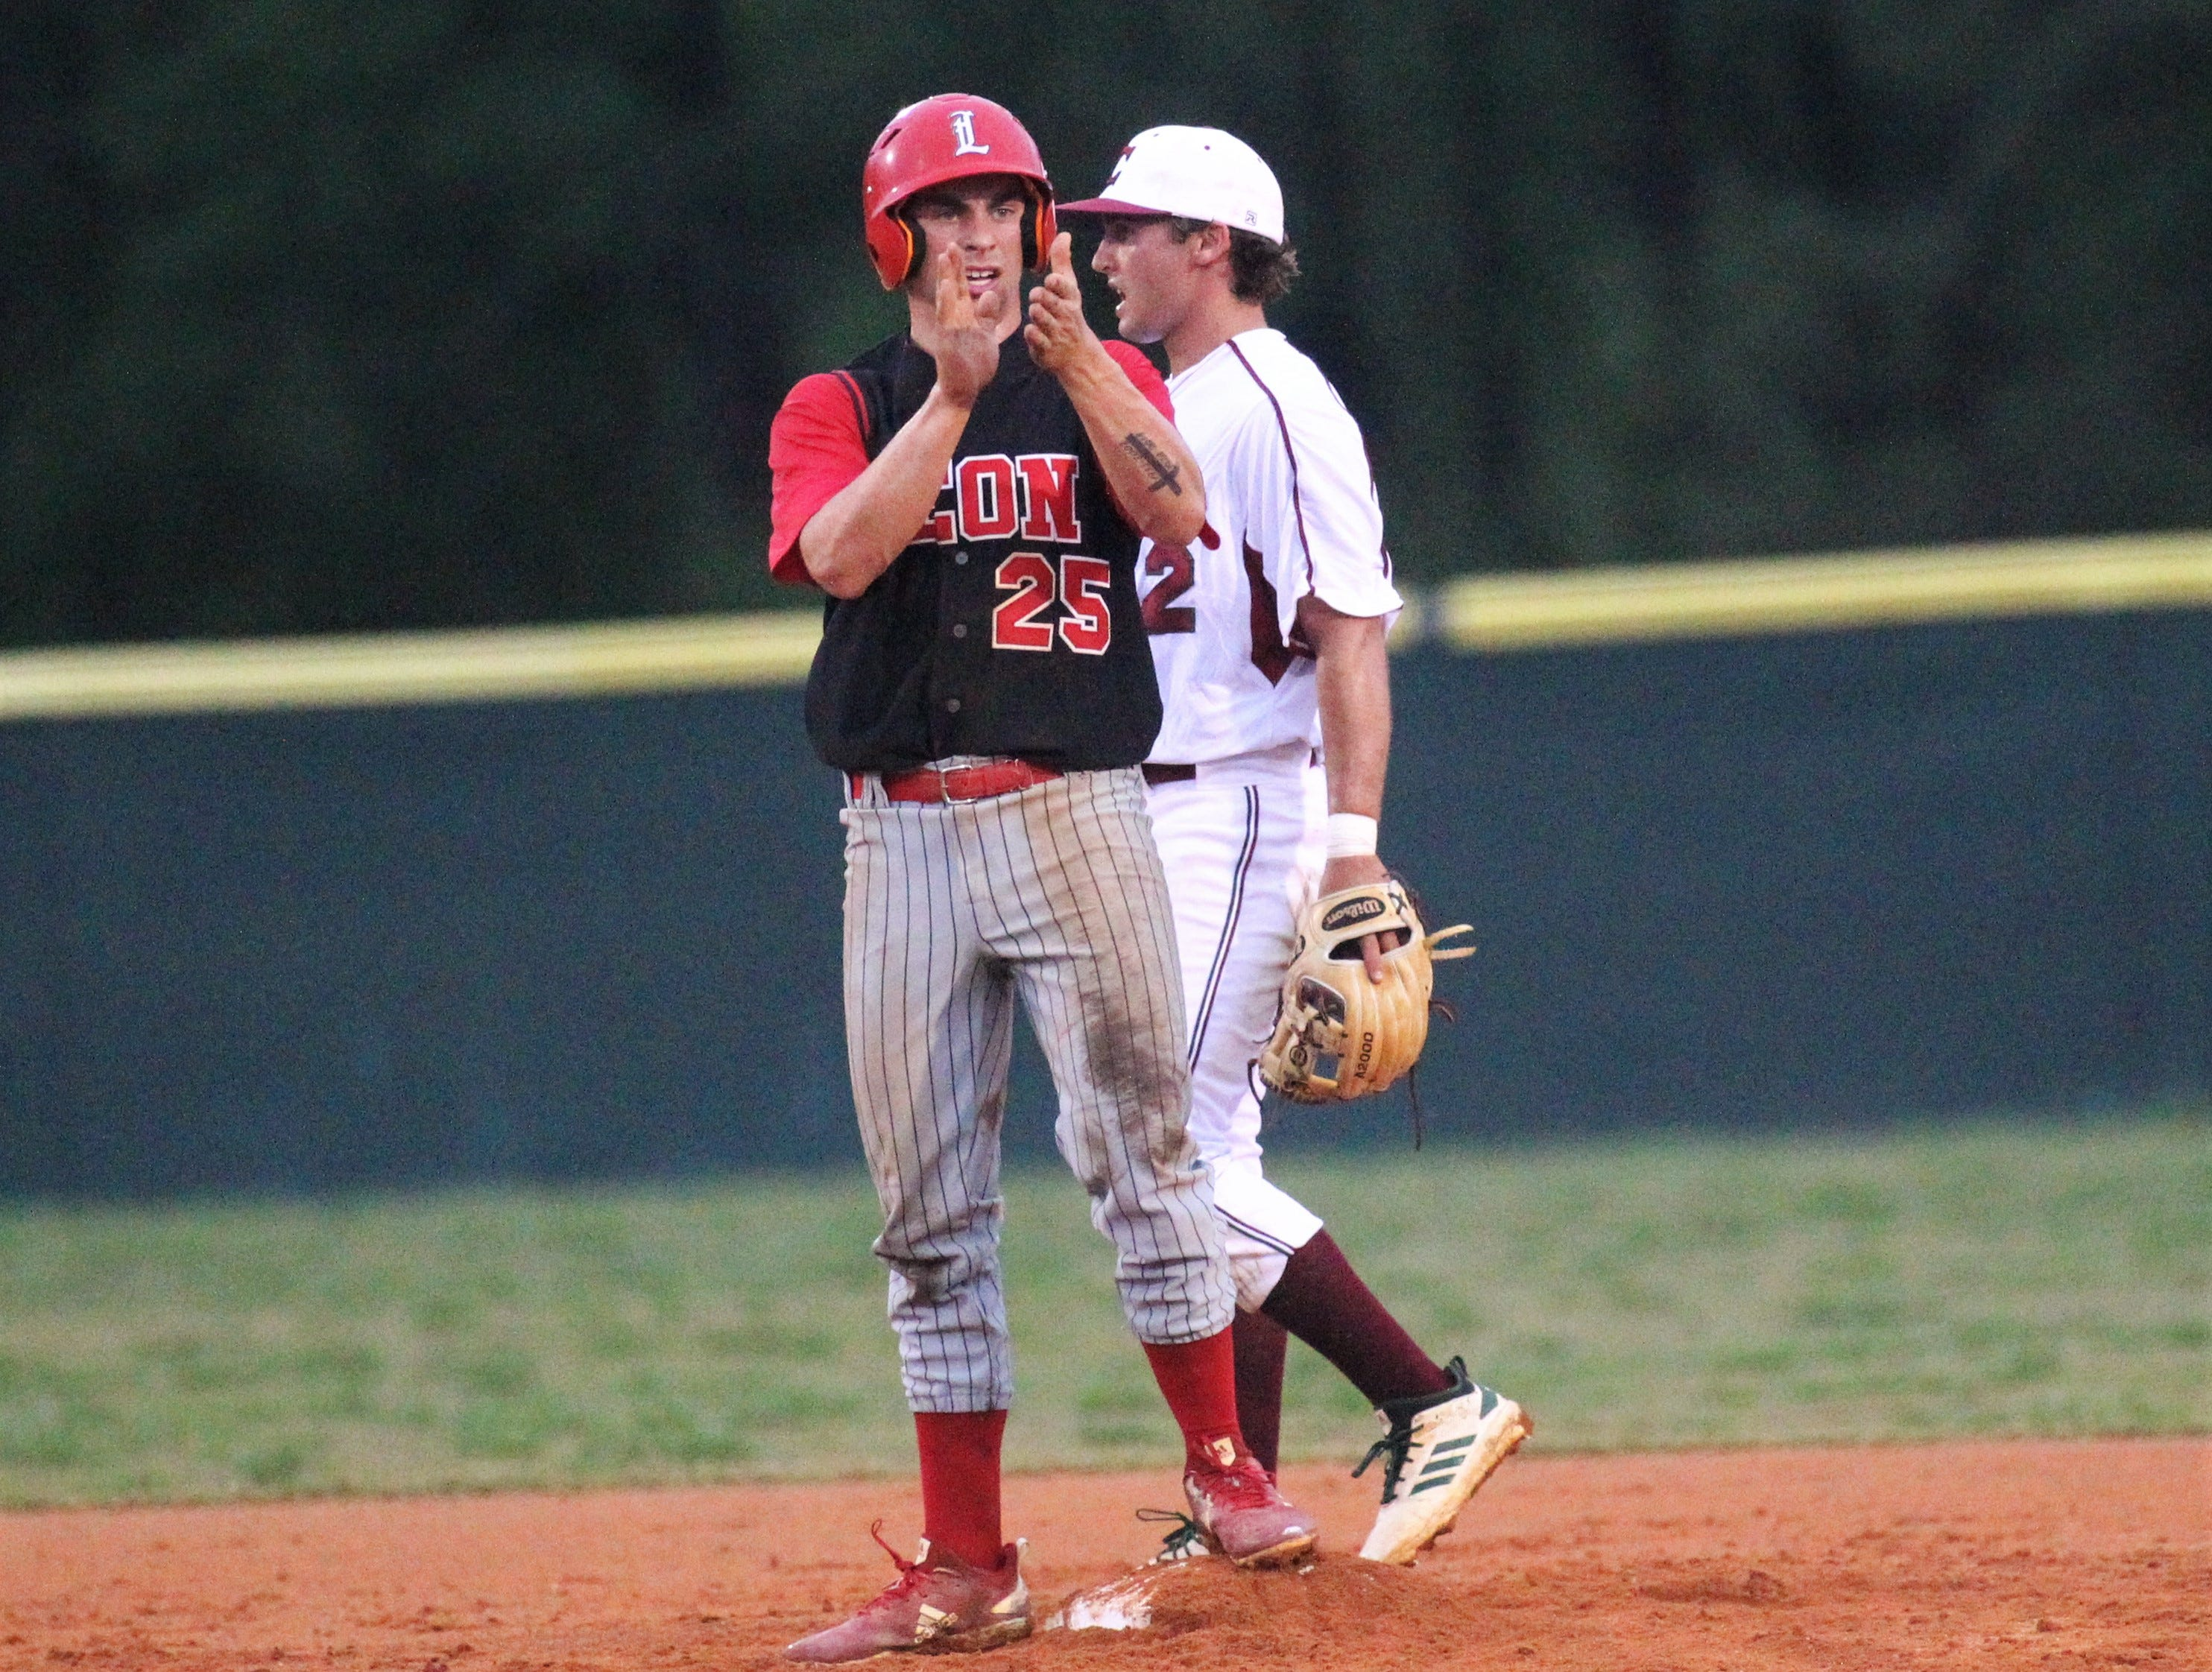 Leon senior Tyler Borges claps for a teammate's hit as Chiles won an 11-6 home game against Leon on Friday, April 5, 2019, to force a season split. The Lions won 3-0 earlier in the week.